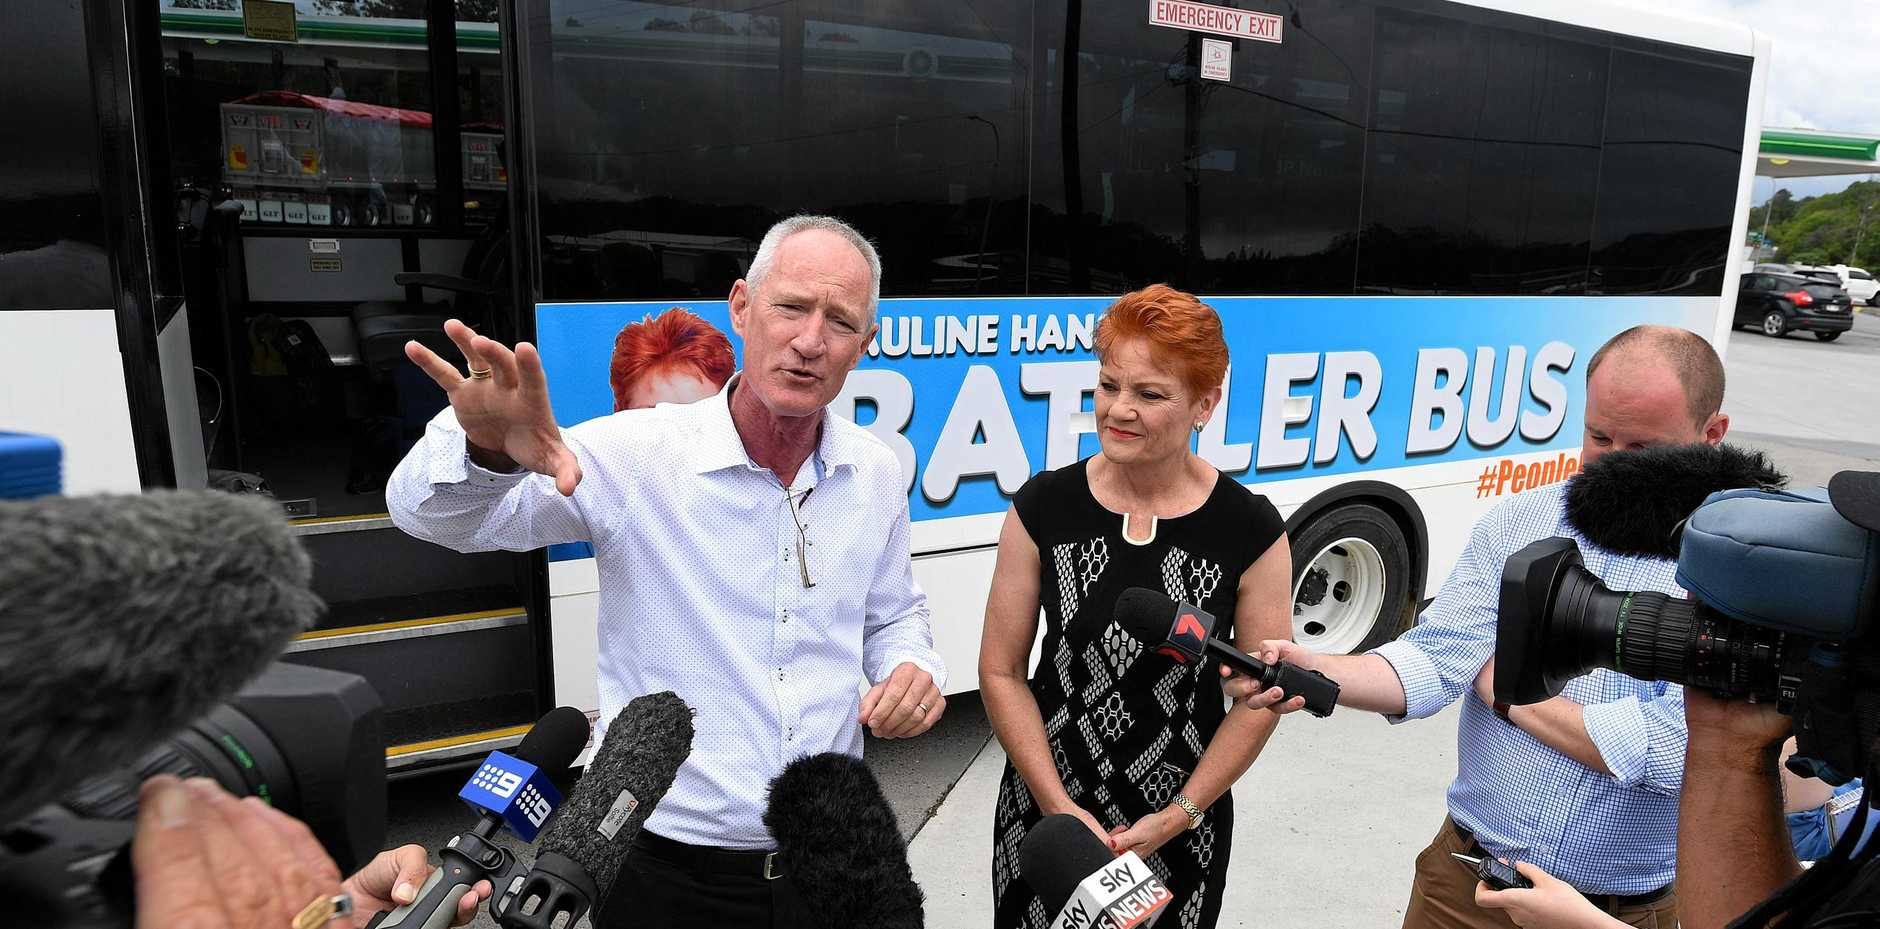 BATTLER BUS: Queensland One Nation leader Steve Dickson (left) and One Nation leader Pauline Hanson are seen during a doorstop at a Nambour petrol station after departing on tour from Brisbane, Monday, November 6.